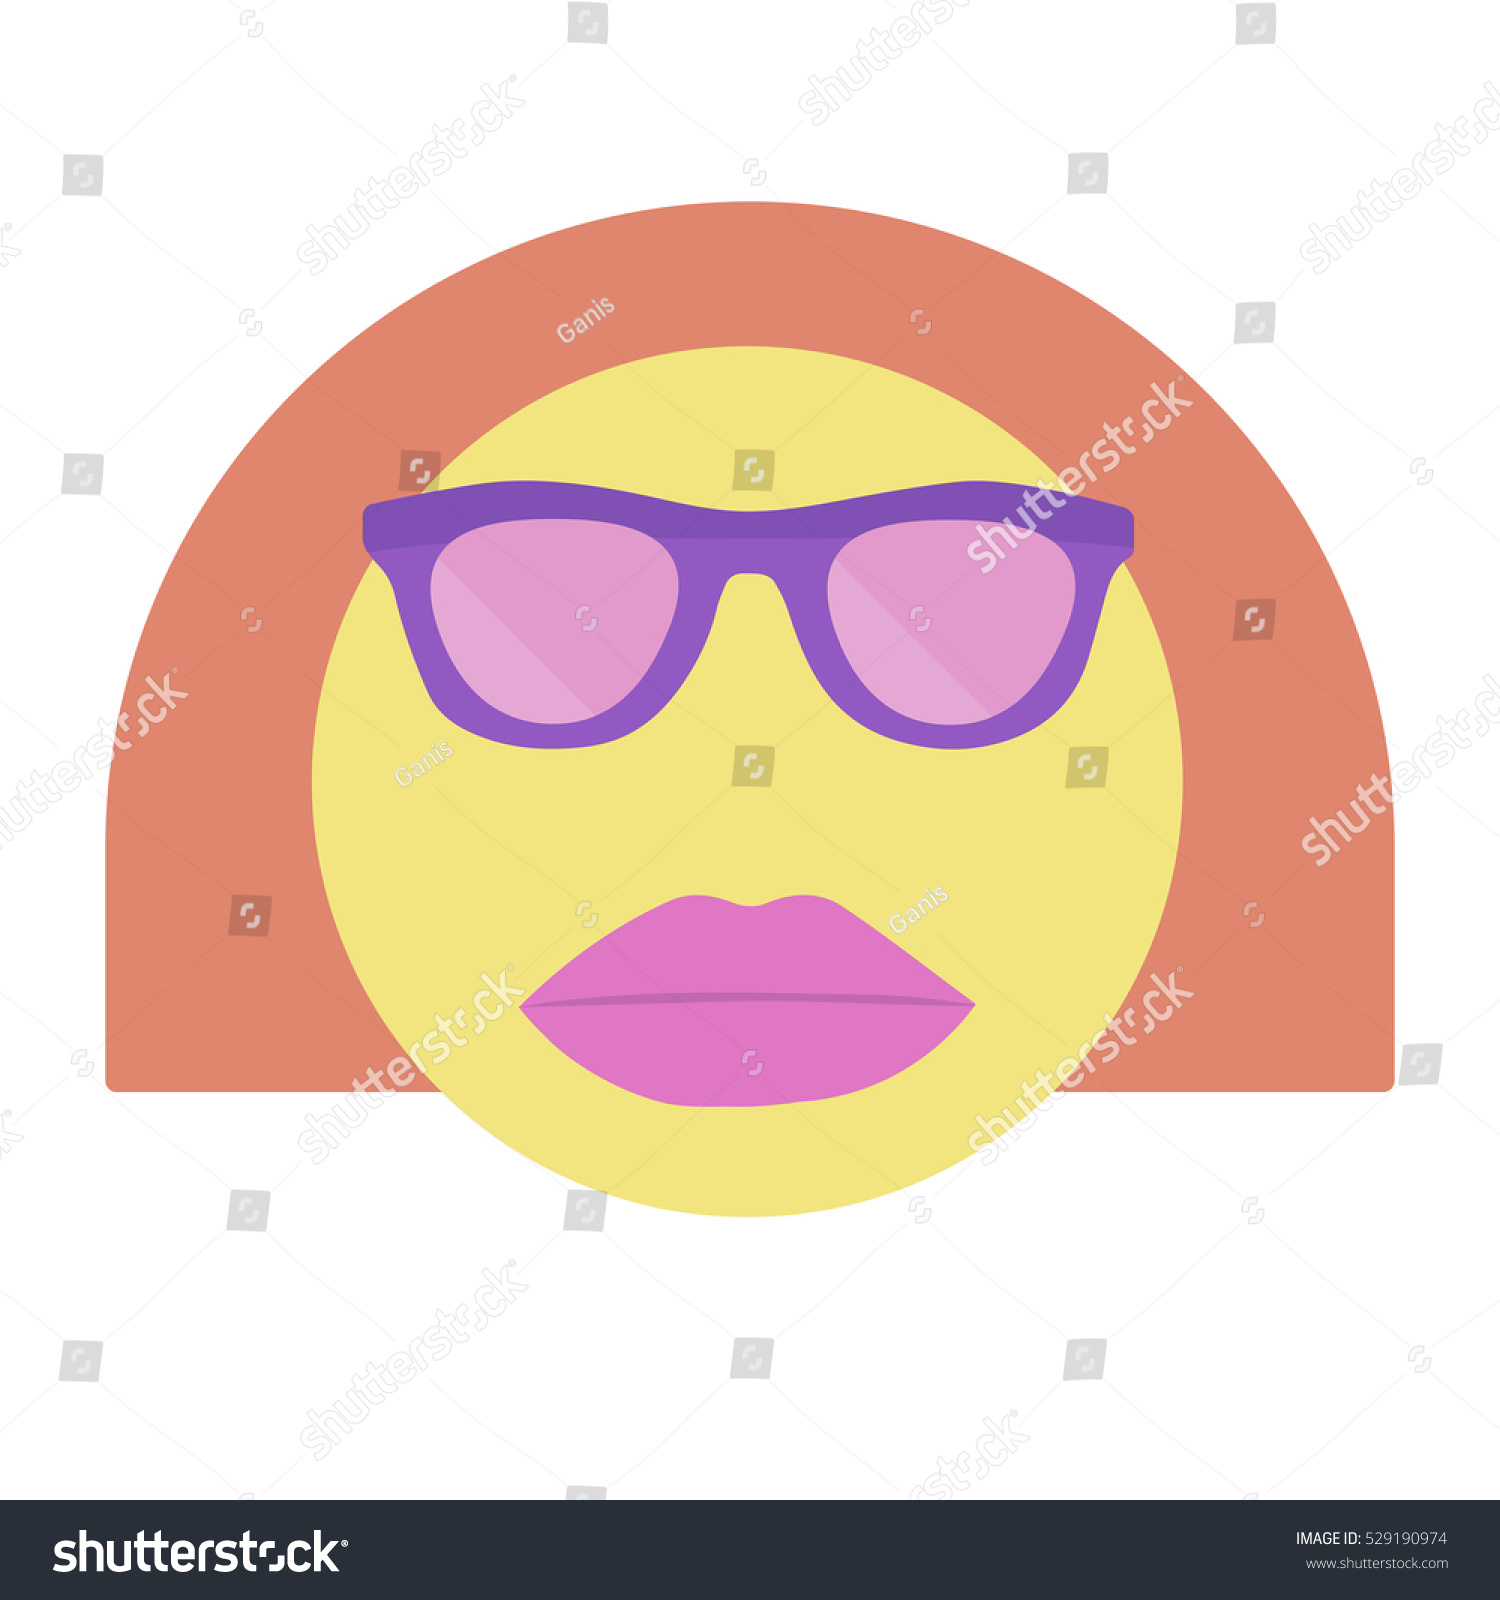 Smile. Smiley Woman In Sunglasses With Lipstick.Vector